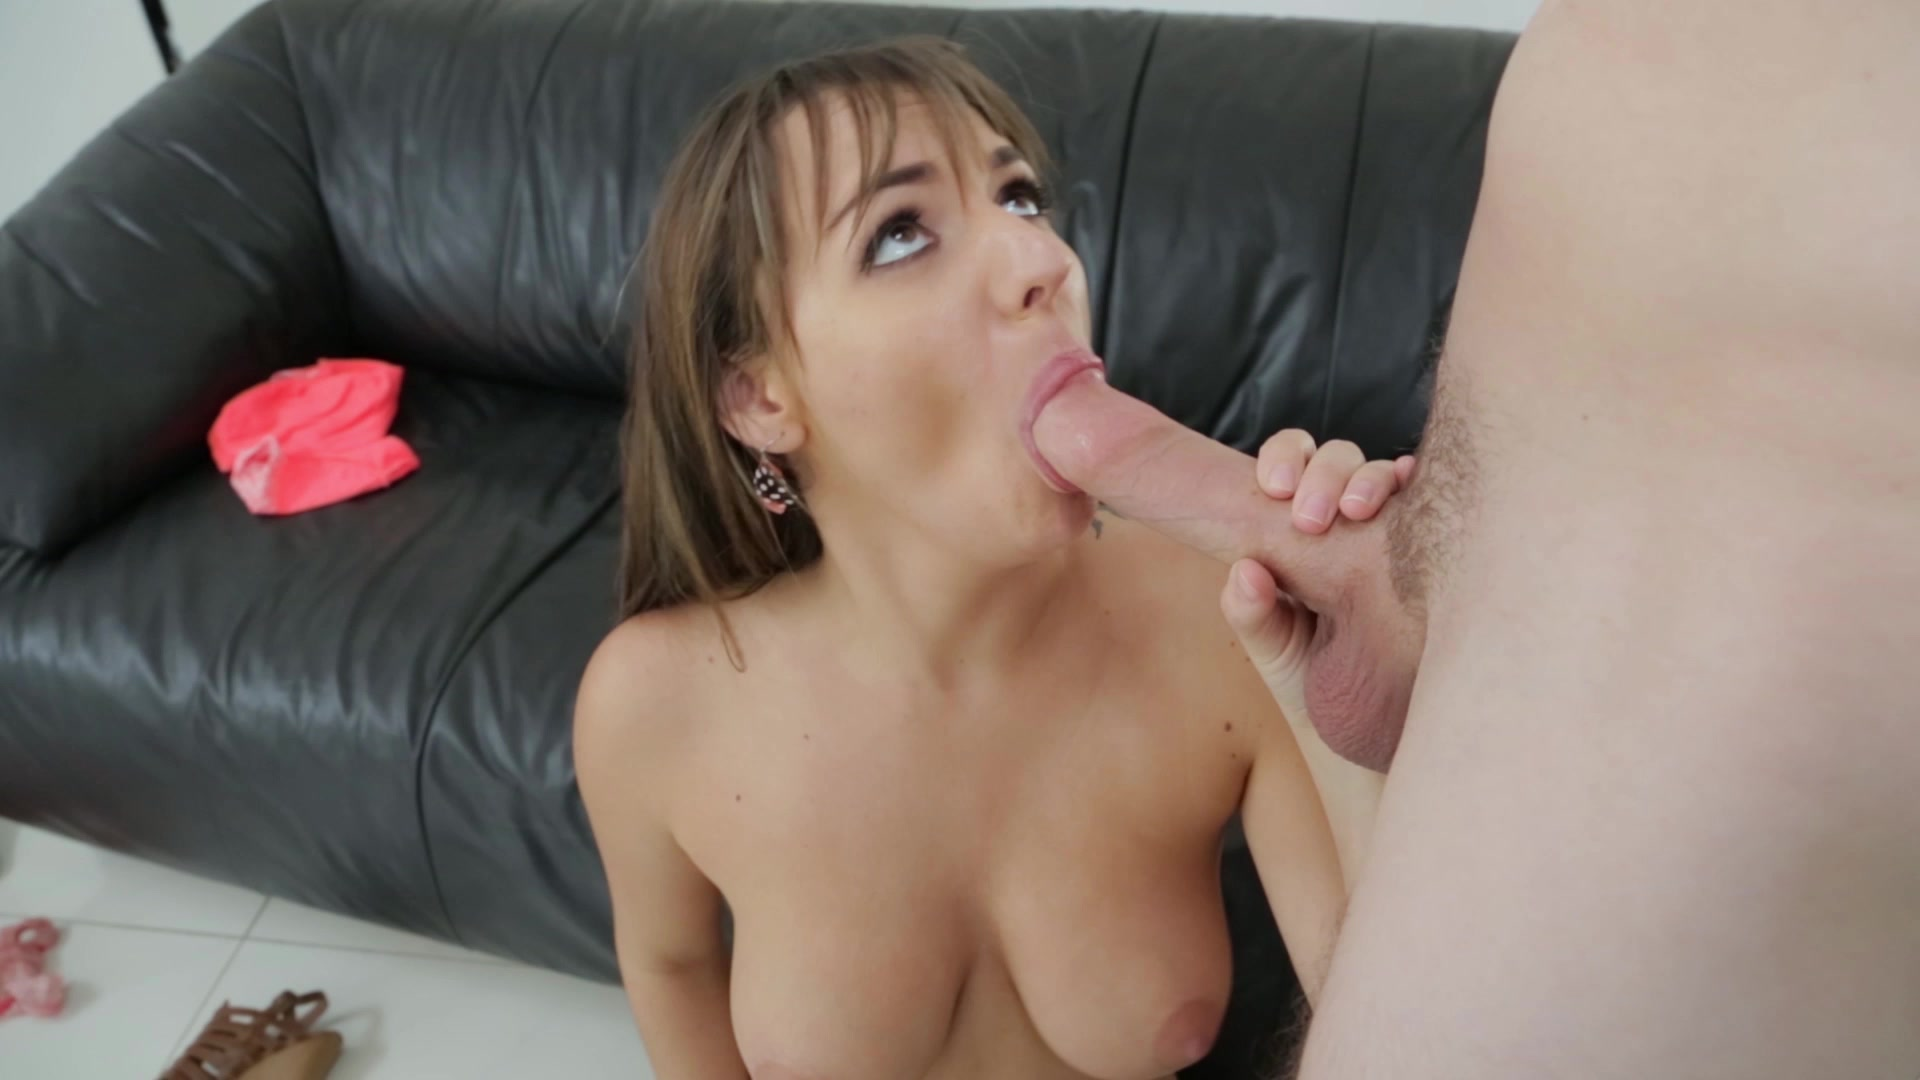 Teen blow job audition